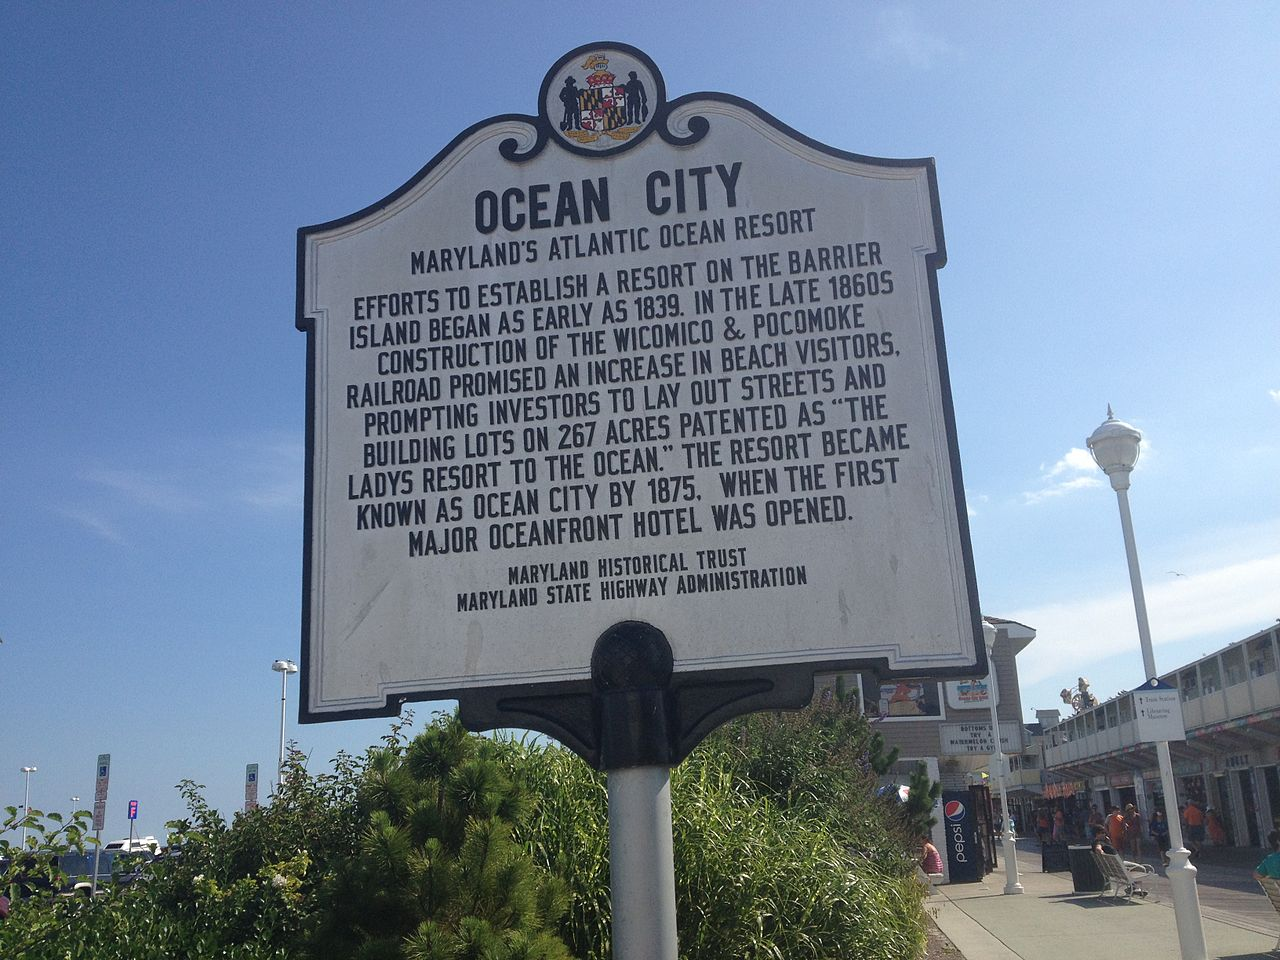 Federal appellate court upholds Ocean City ban on topless sunbathing